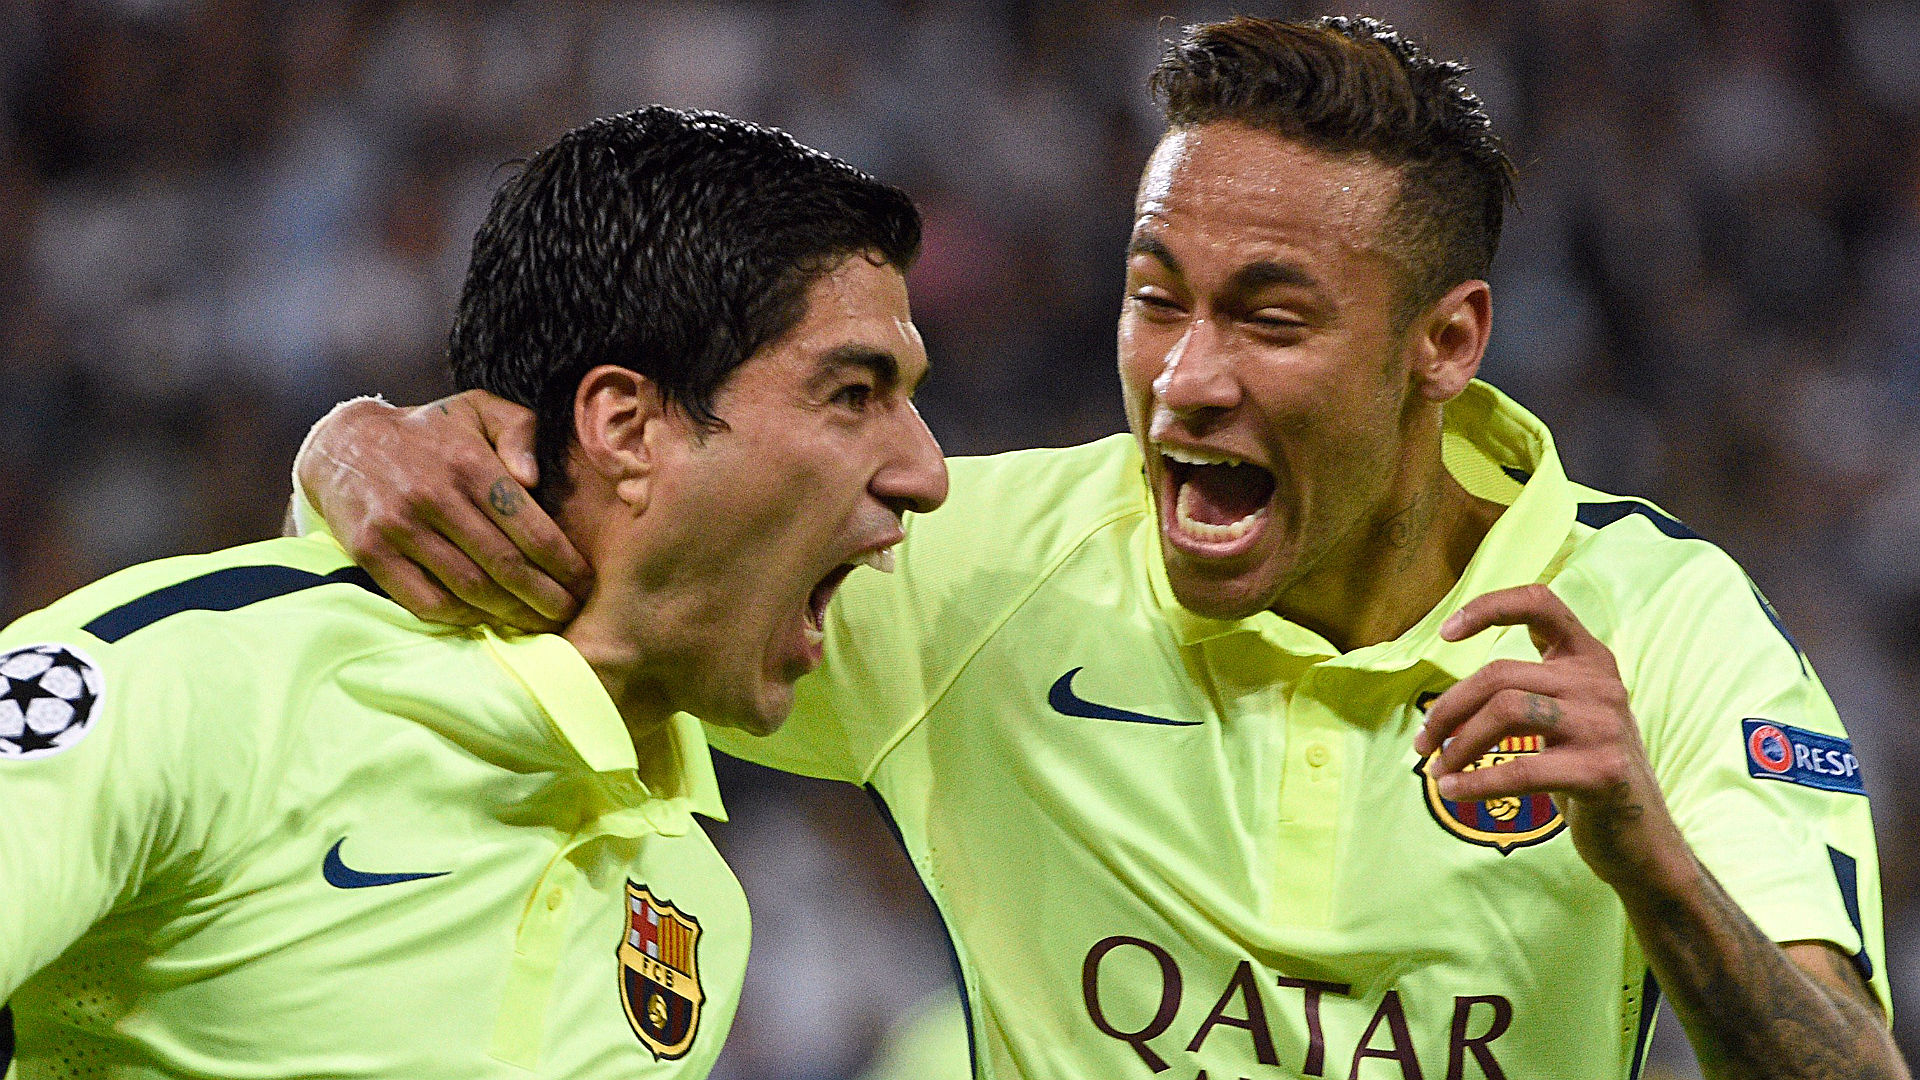 Champions League odds – Barcelona jumps to favorite status after impressive win in Paris